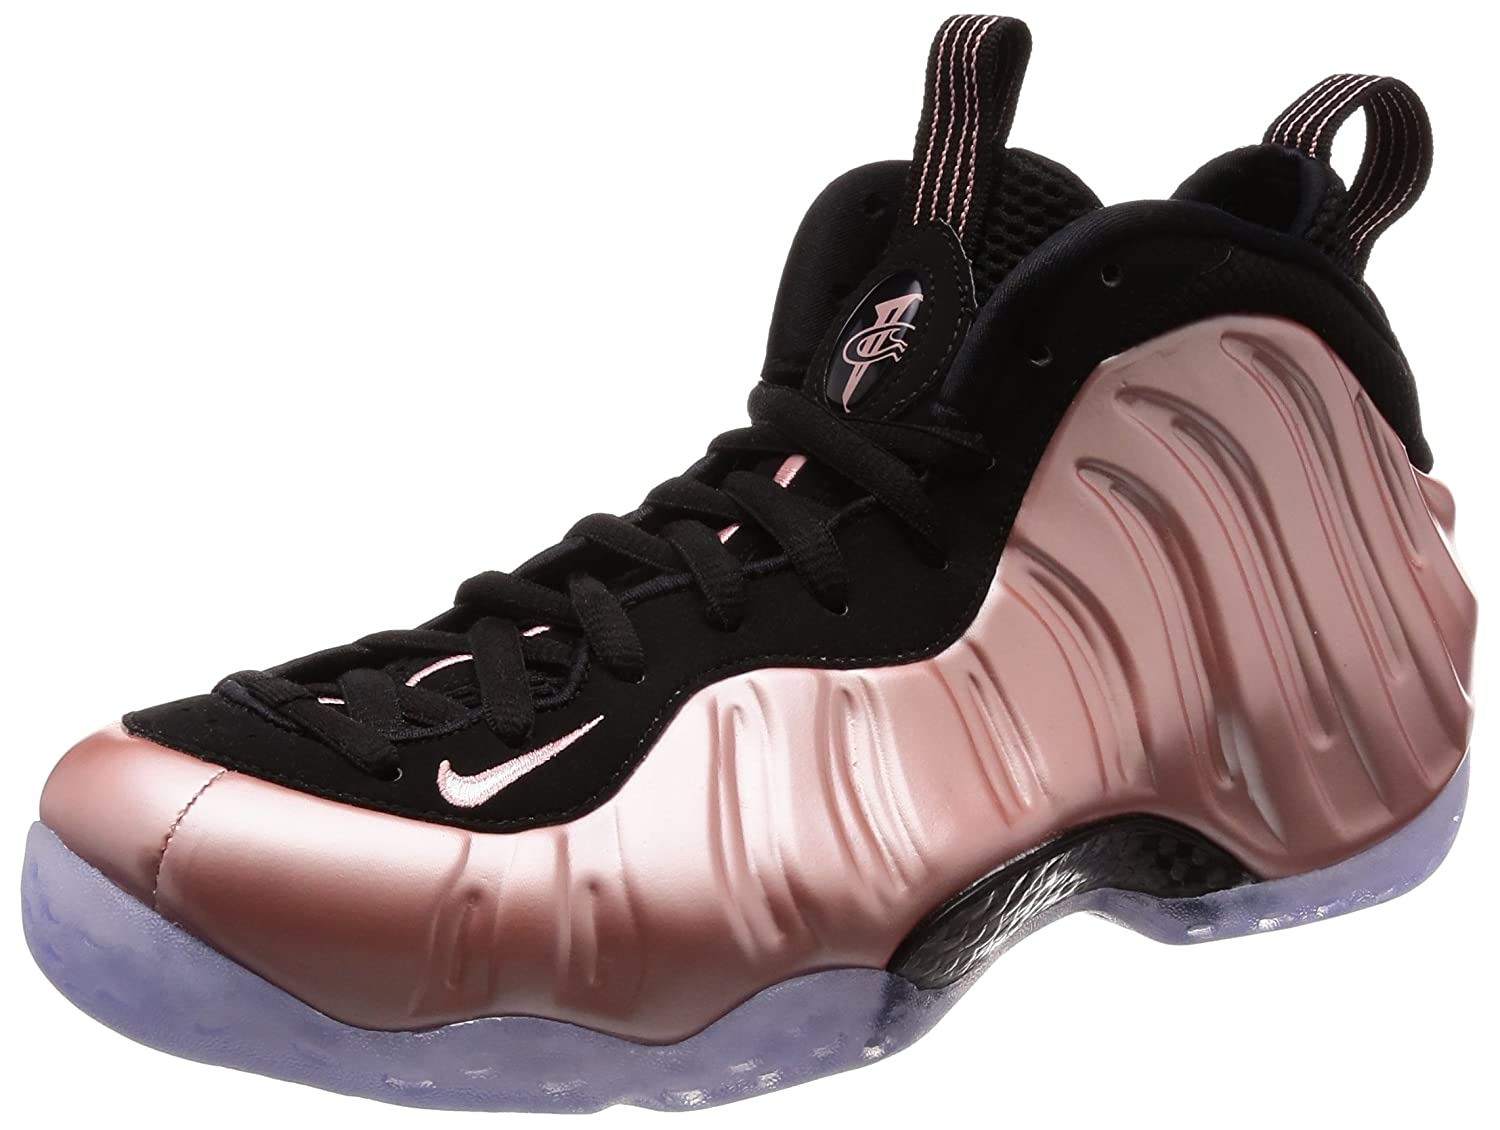 7bce8c08d23a Nike Air Foamposite One Footwear Elemental Rose Mens Trainers Sneaker Shoes   Amazon.co.uk  Shoes   Bags